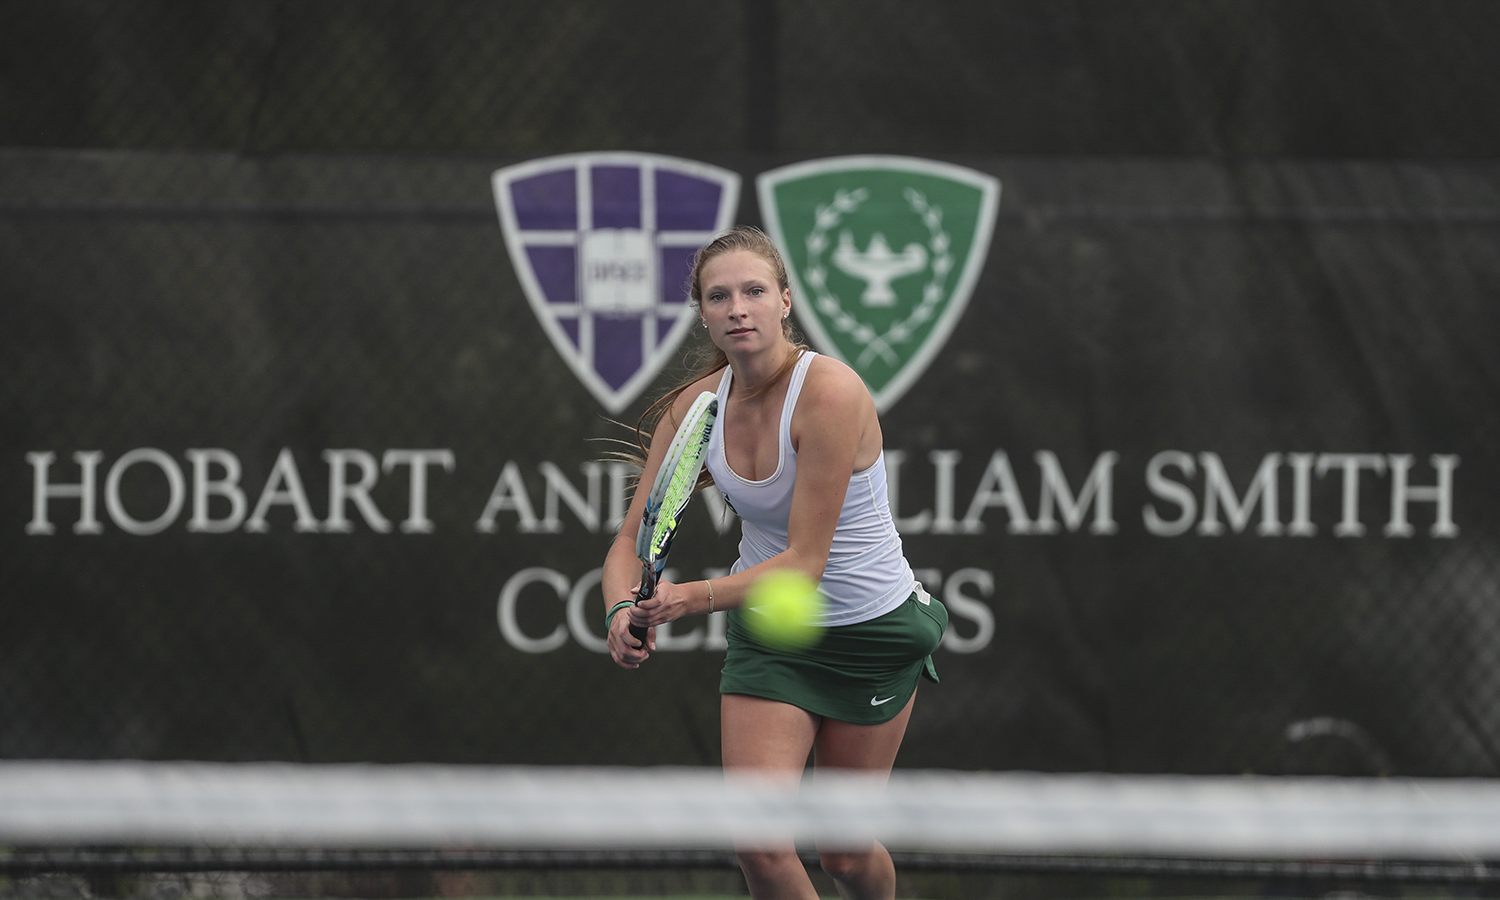 Charlotte Engebrecht '21 hits a backhand during the Mary Hosking Invitational in Geneva, N.Y. on Saturday.